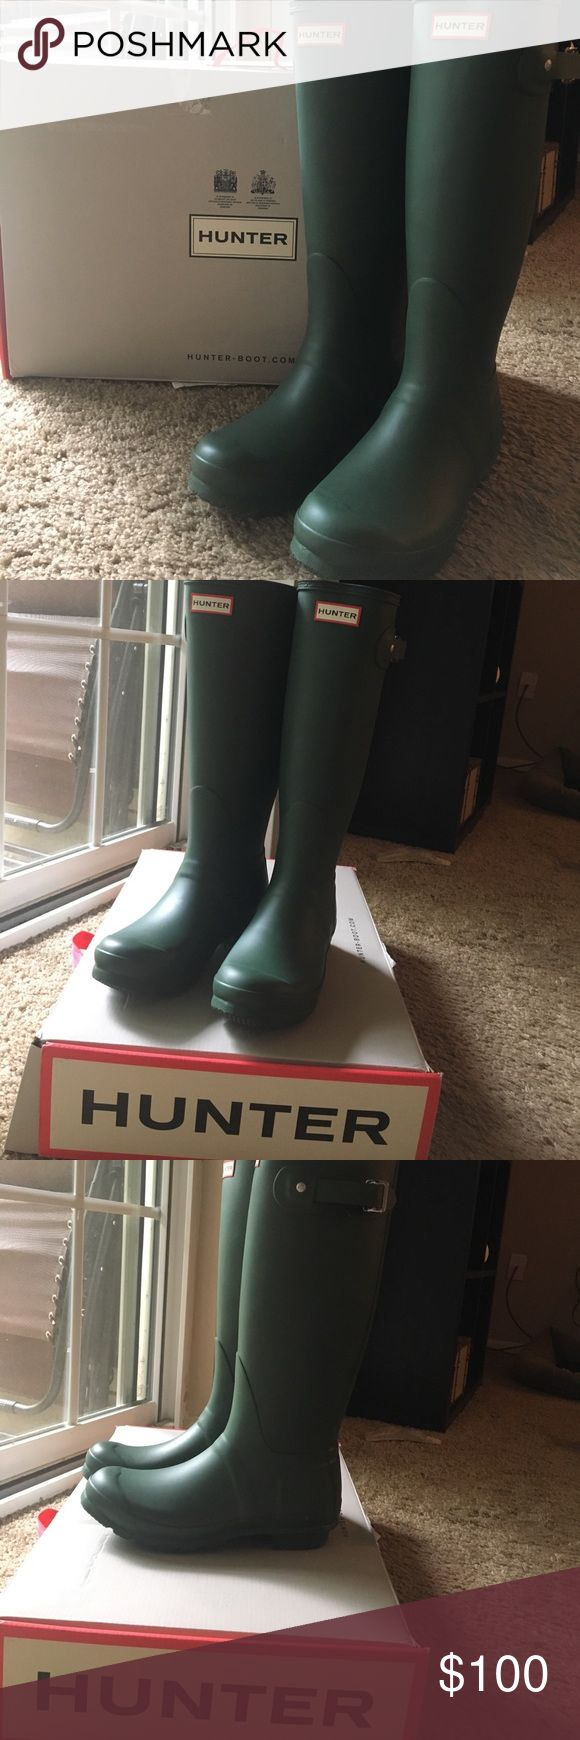 Hunter Boots - Tall Original Fit with Box Beautiful, never worn Hunter Original Tall boots. Brand new with original box. US women's size 7 or men's size 6. UK size 5. EU size 38. Have had these for a little while but they sat in my closet. Hunter Boots Shoes Winter & Rain Boots